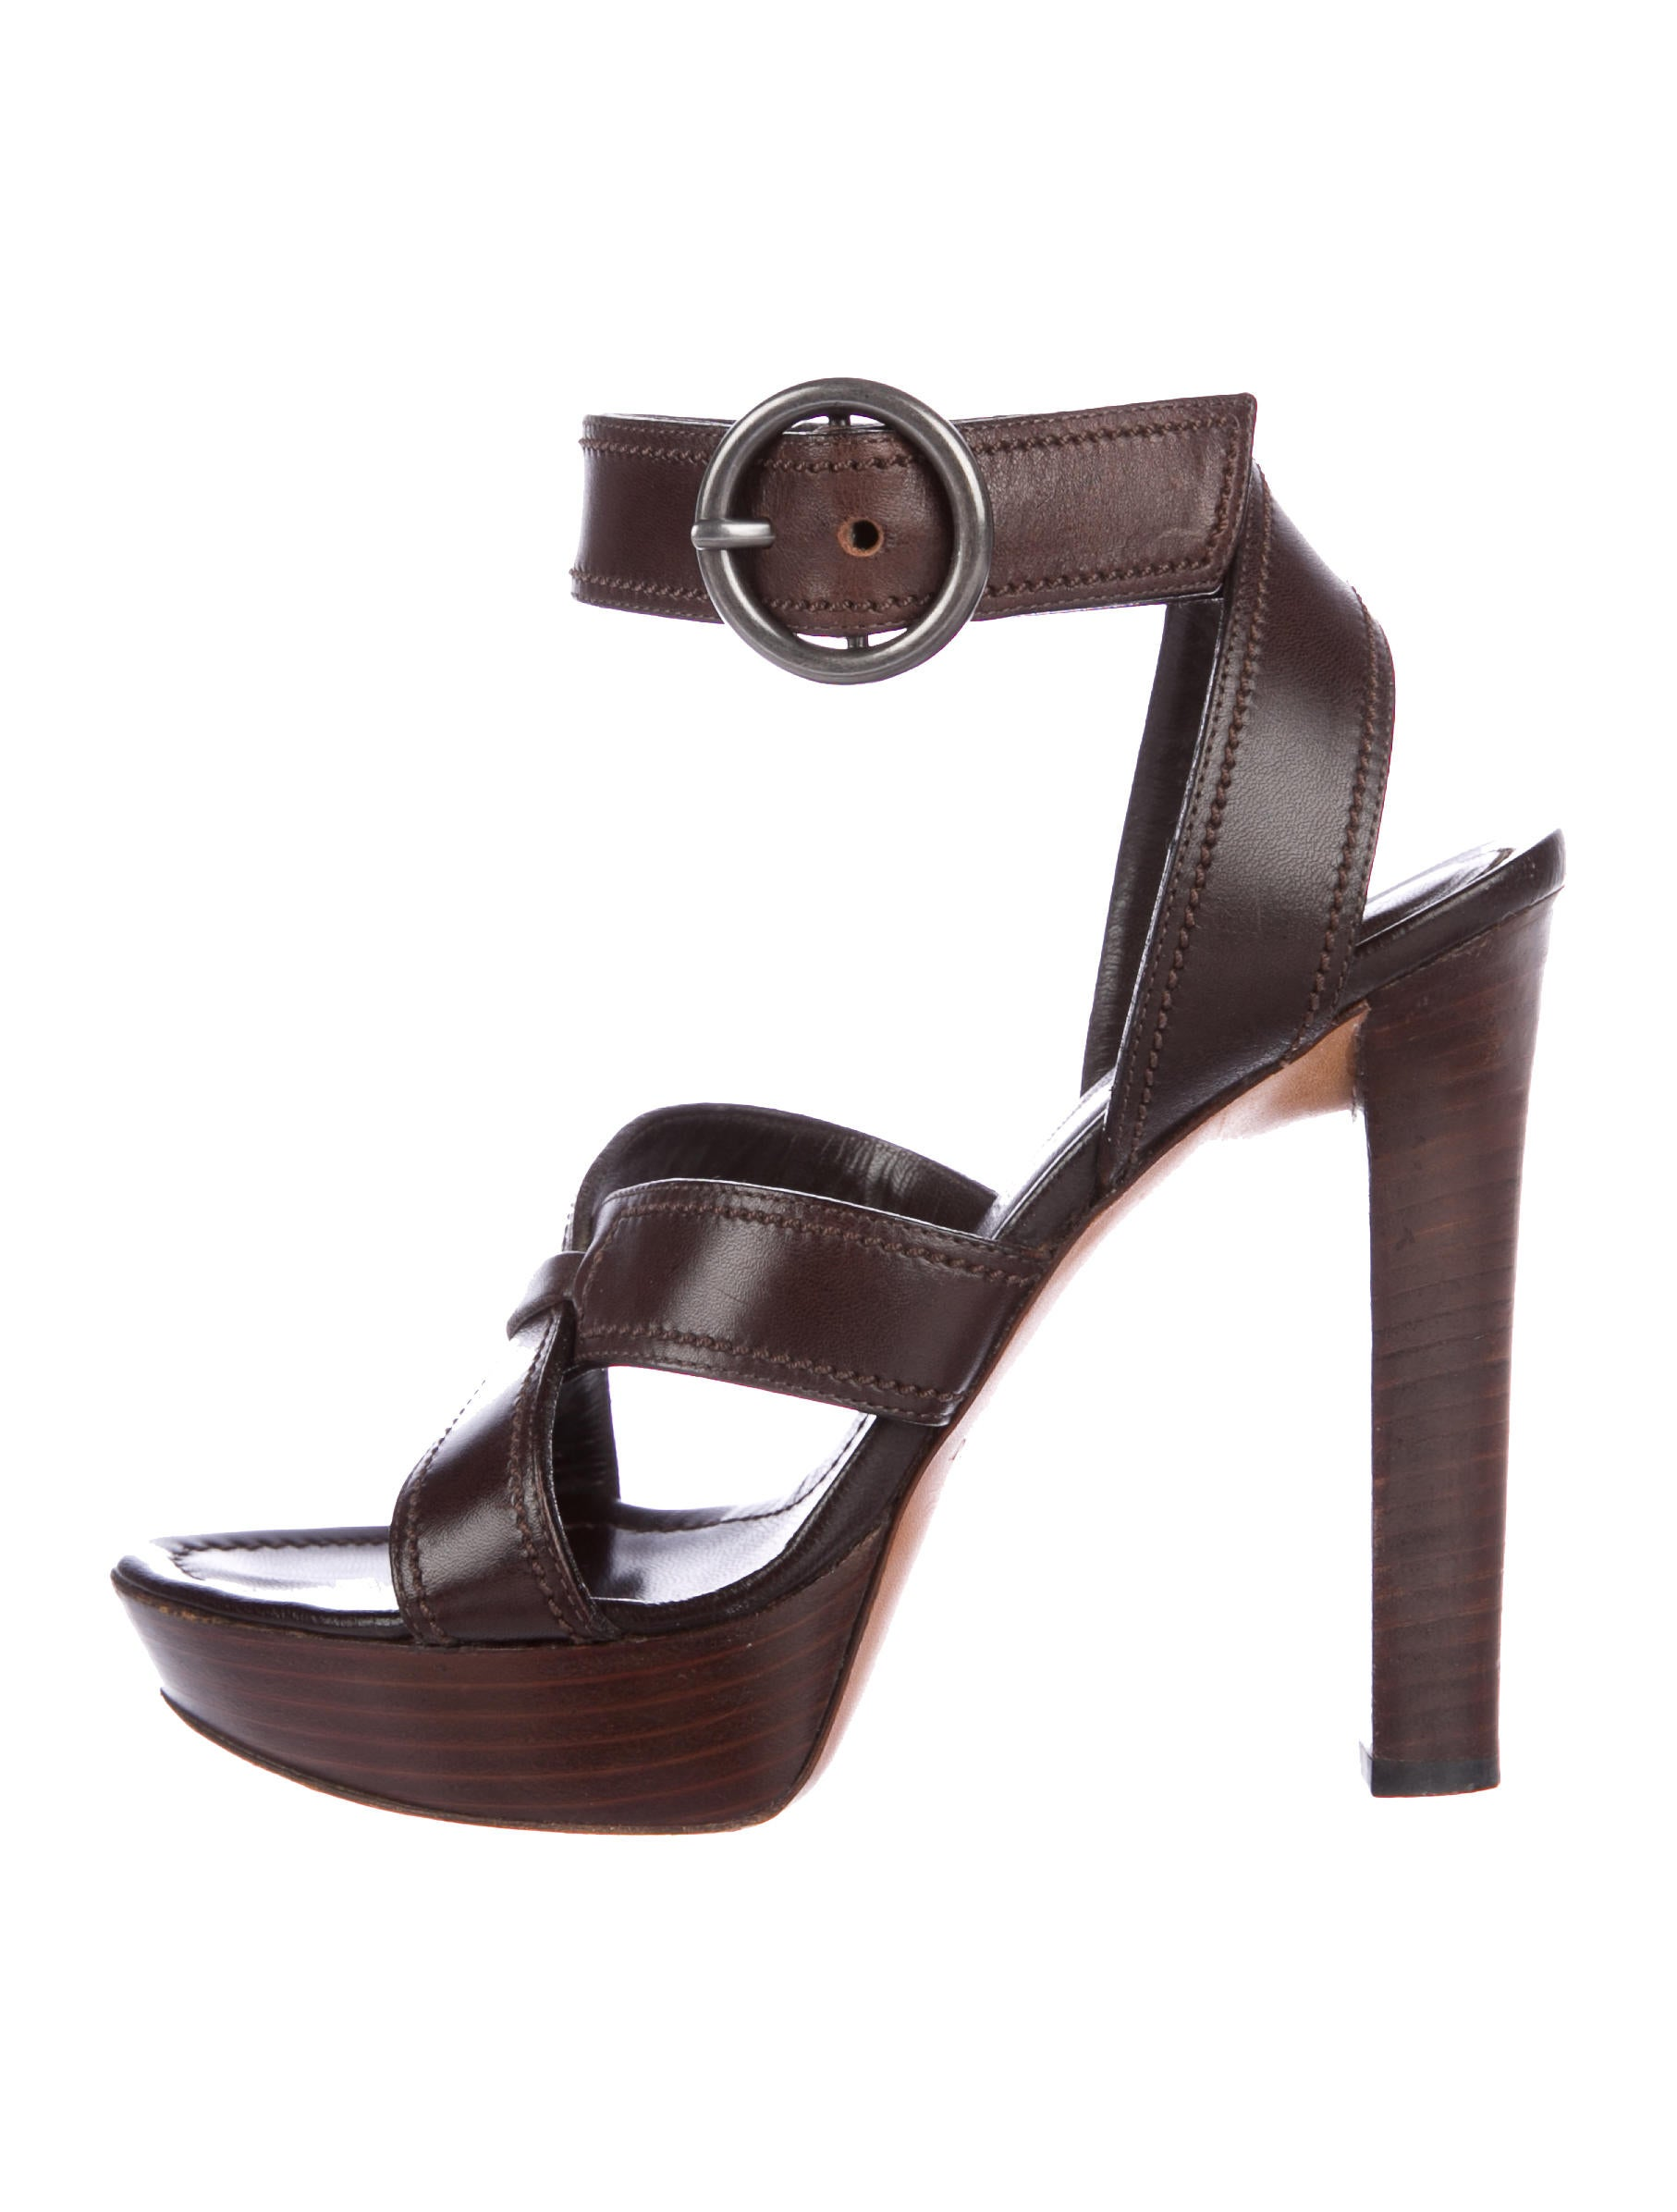 hot sale for sale Yves Saint Laurent Leather Crossover Sandals cheap looking for perfect for sale J8bpr4EHnH